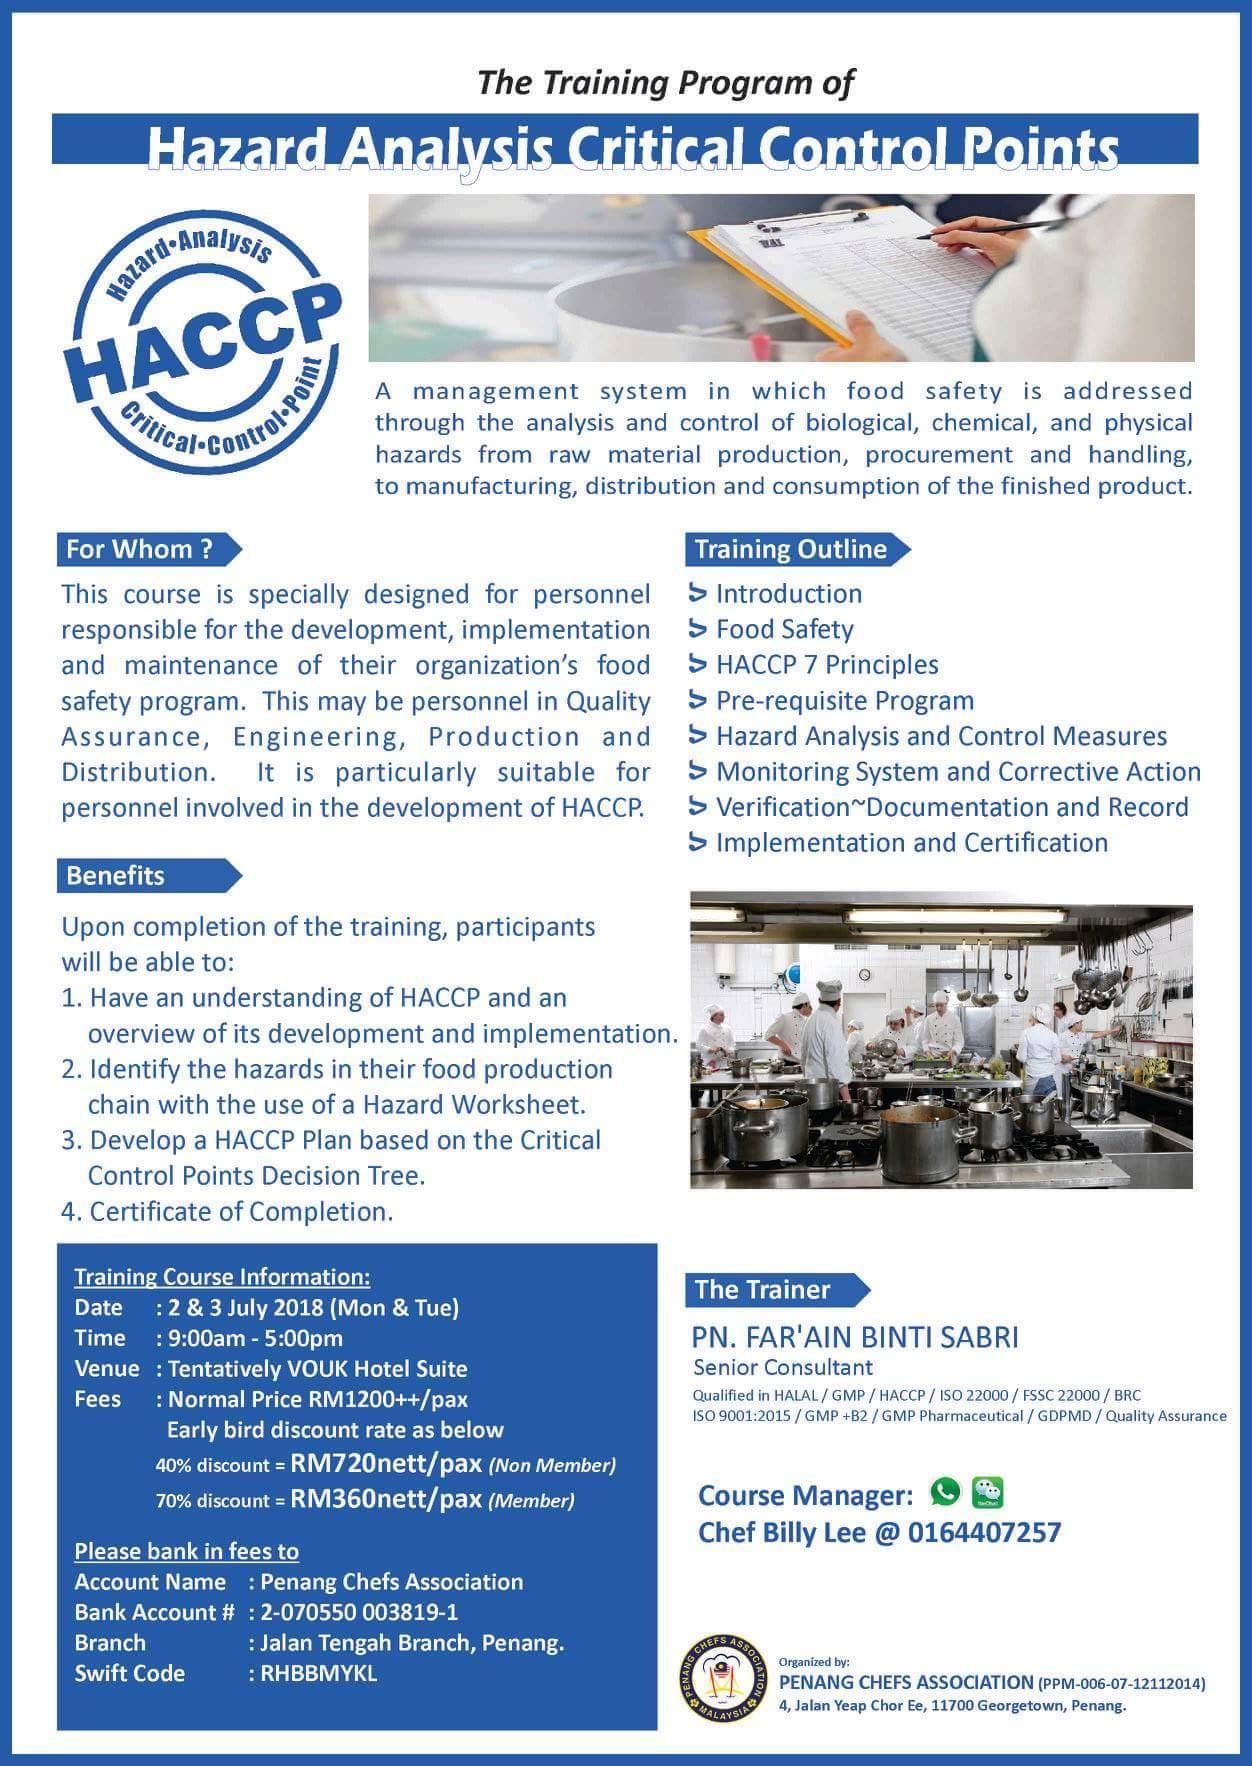 HACCP Food System Training at The Vouk Hotel, Penang, Penang